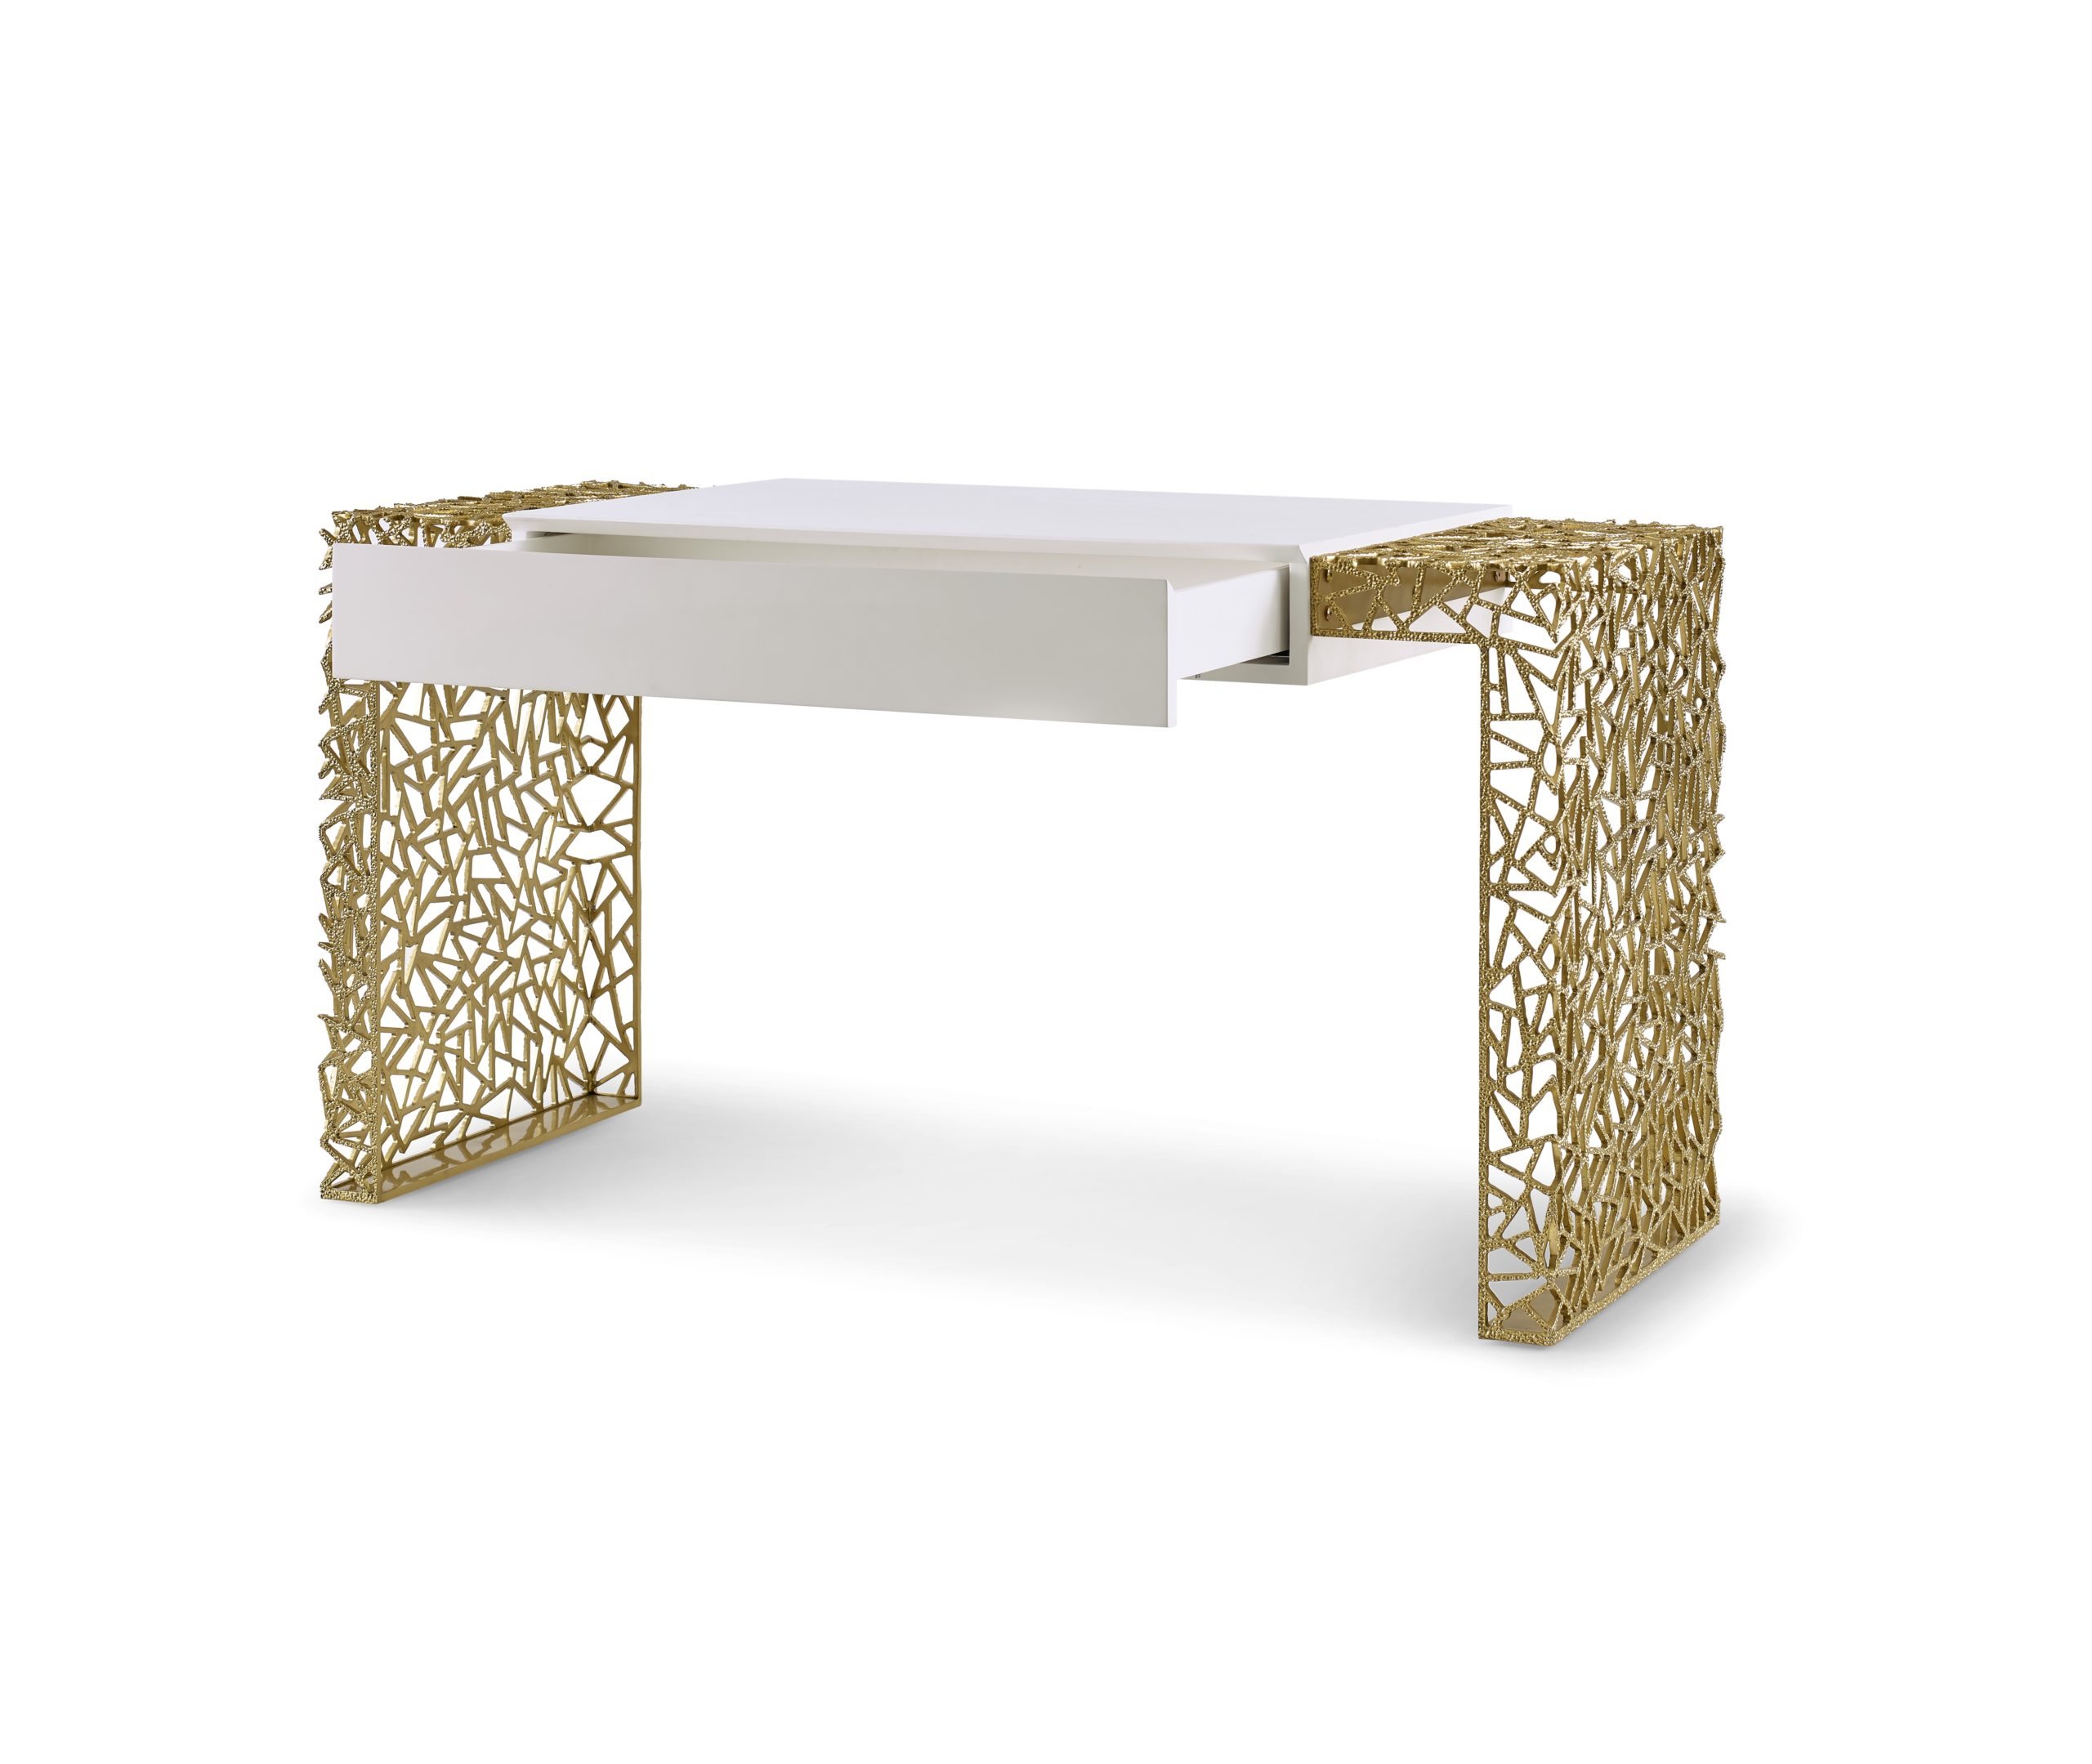 Baker_products_WNWN_fractal_desk_BAA3265_OPEN-scaled-1